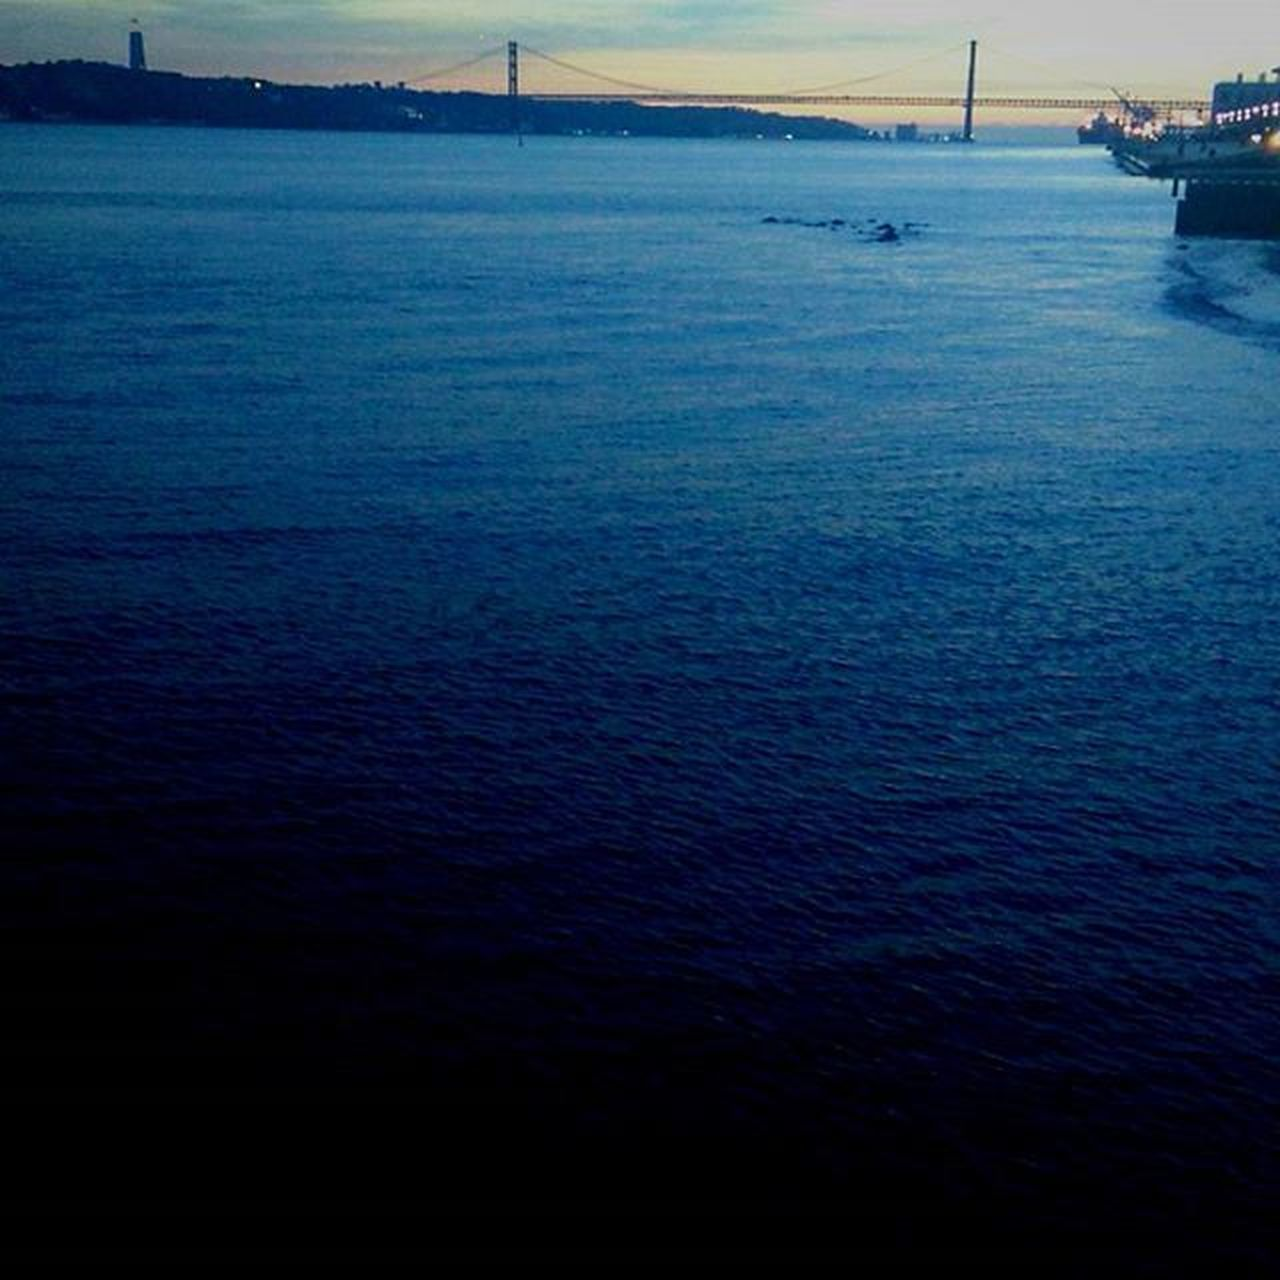 Goodevening  Sunset Portugaldenorteasul Lisbonlovers Caisdascolunas Igersoftheday Igers Faded_world Faded Bng Bnw_captures Mysquarehere Blue River Tejo Lovemycountry Enjoyit Life Liveit Enjoylife Lifeisbeautiful Lifeisshort P3 Bridge Seeyoutomorrow laliphotography landscape